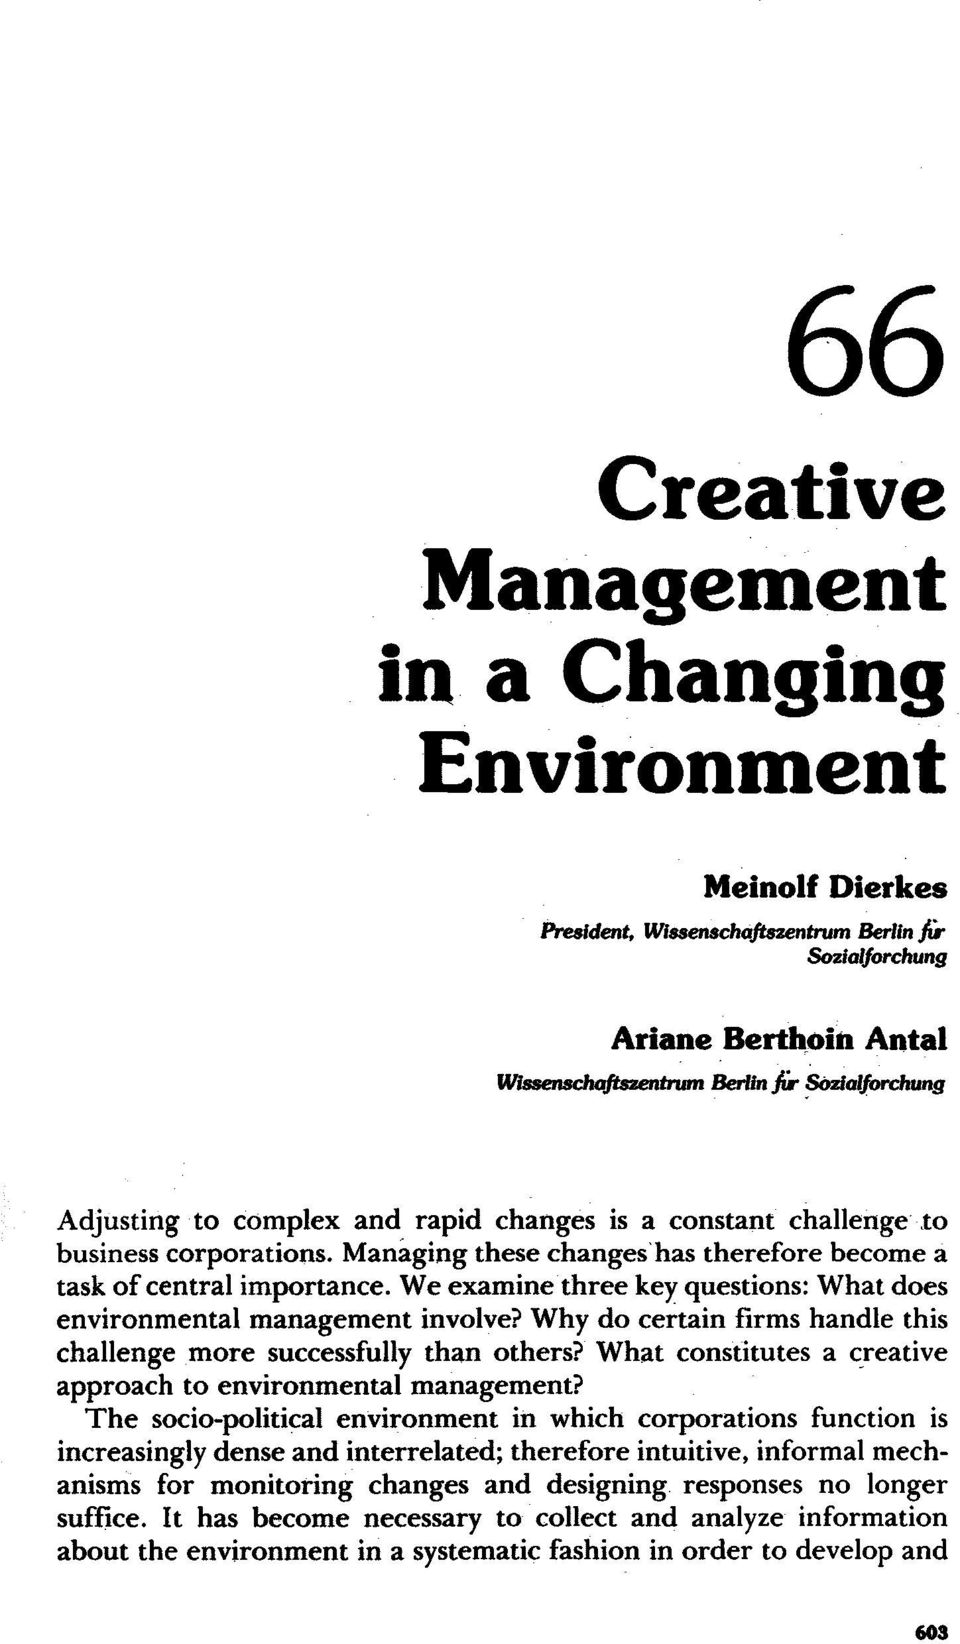 We examine three key questions: What does environmental management involve? Why do certain firms handle this challenge more successfully than others?